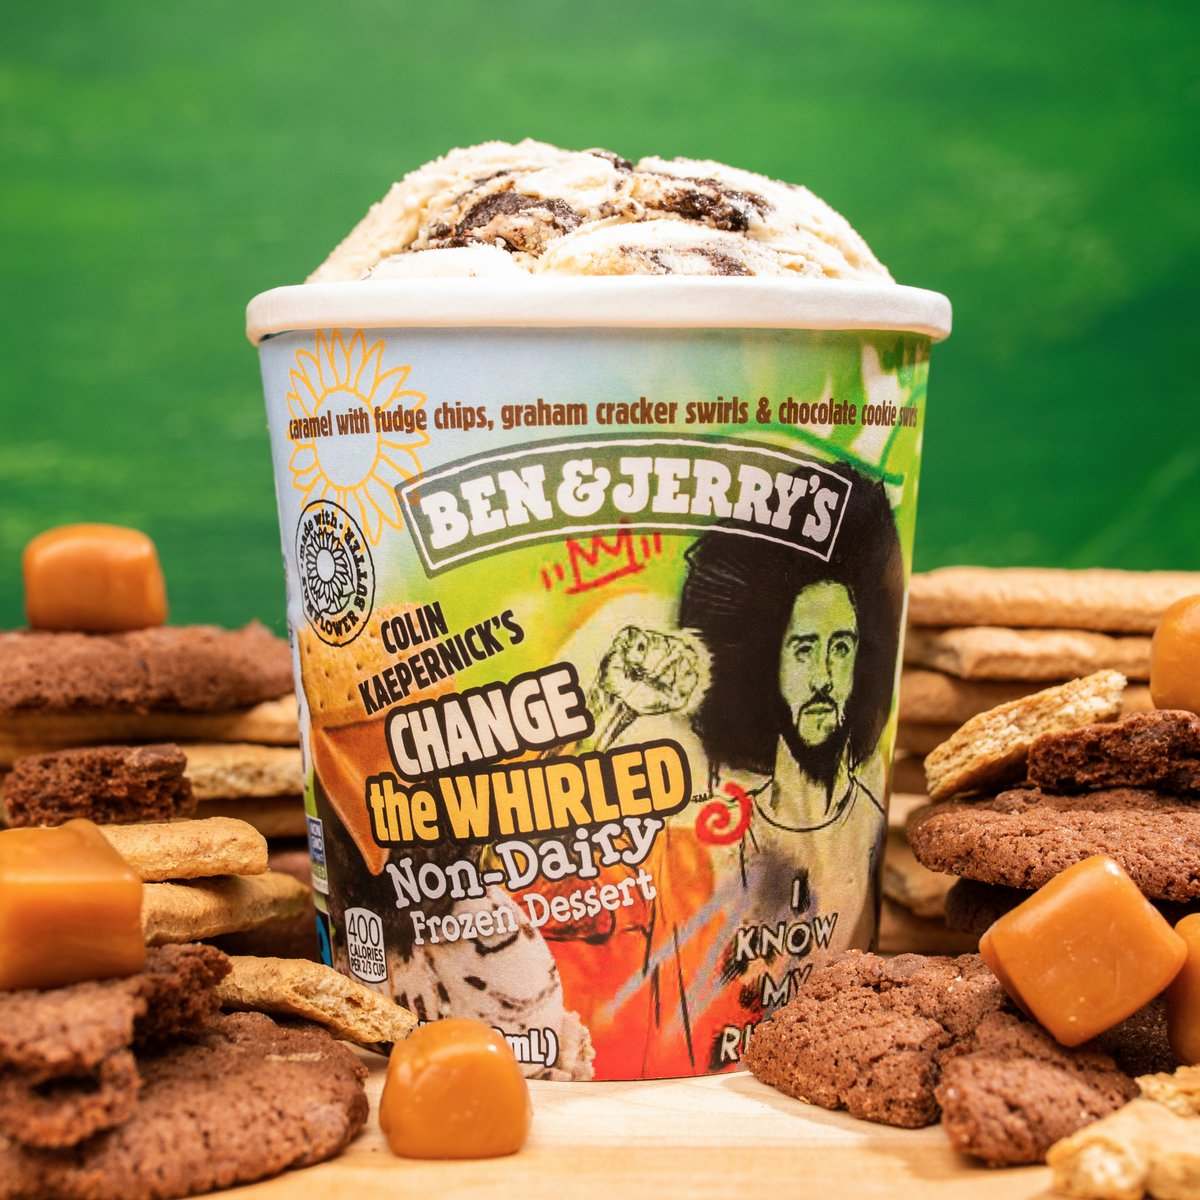 We've teamed up with @BenAndJerrys to serve up joy on the journey to justice!  Today, we're excited to introduce Change the Whirled, a new non-dairy flavor that hits shelves in early-2021!  100% of @Kaepernick7's proceeds will go to KYRC with matching support from Ben & Jerry's.